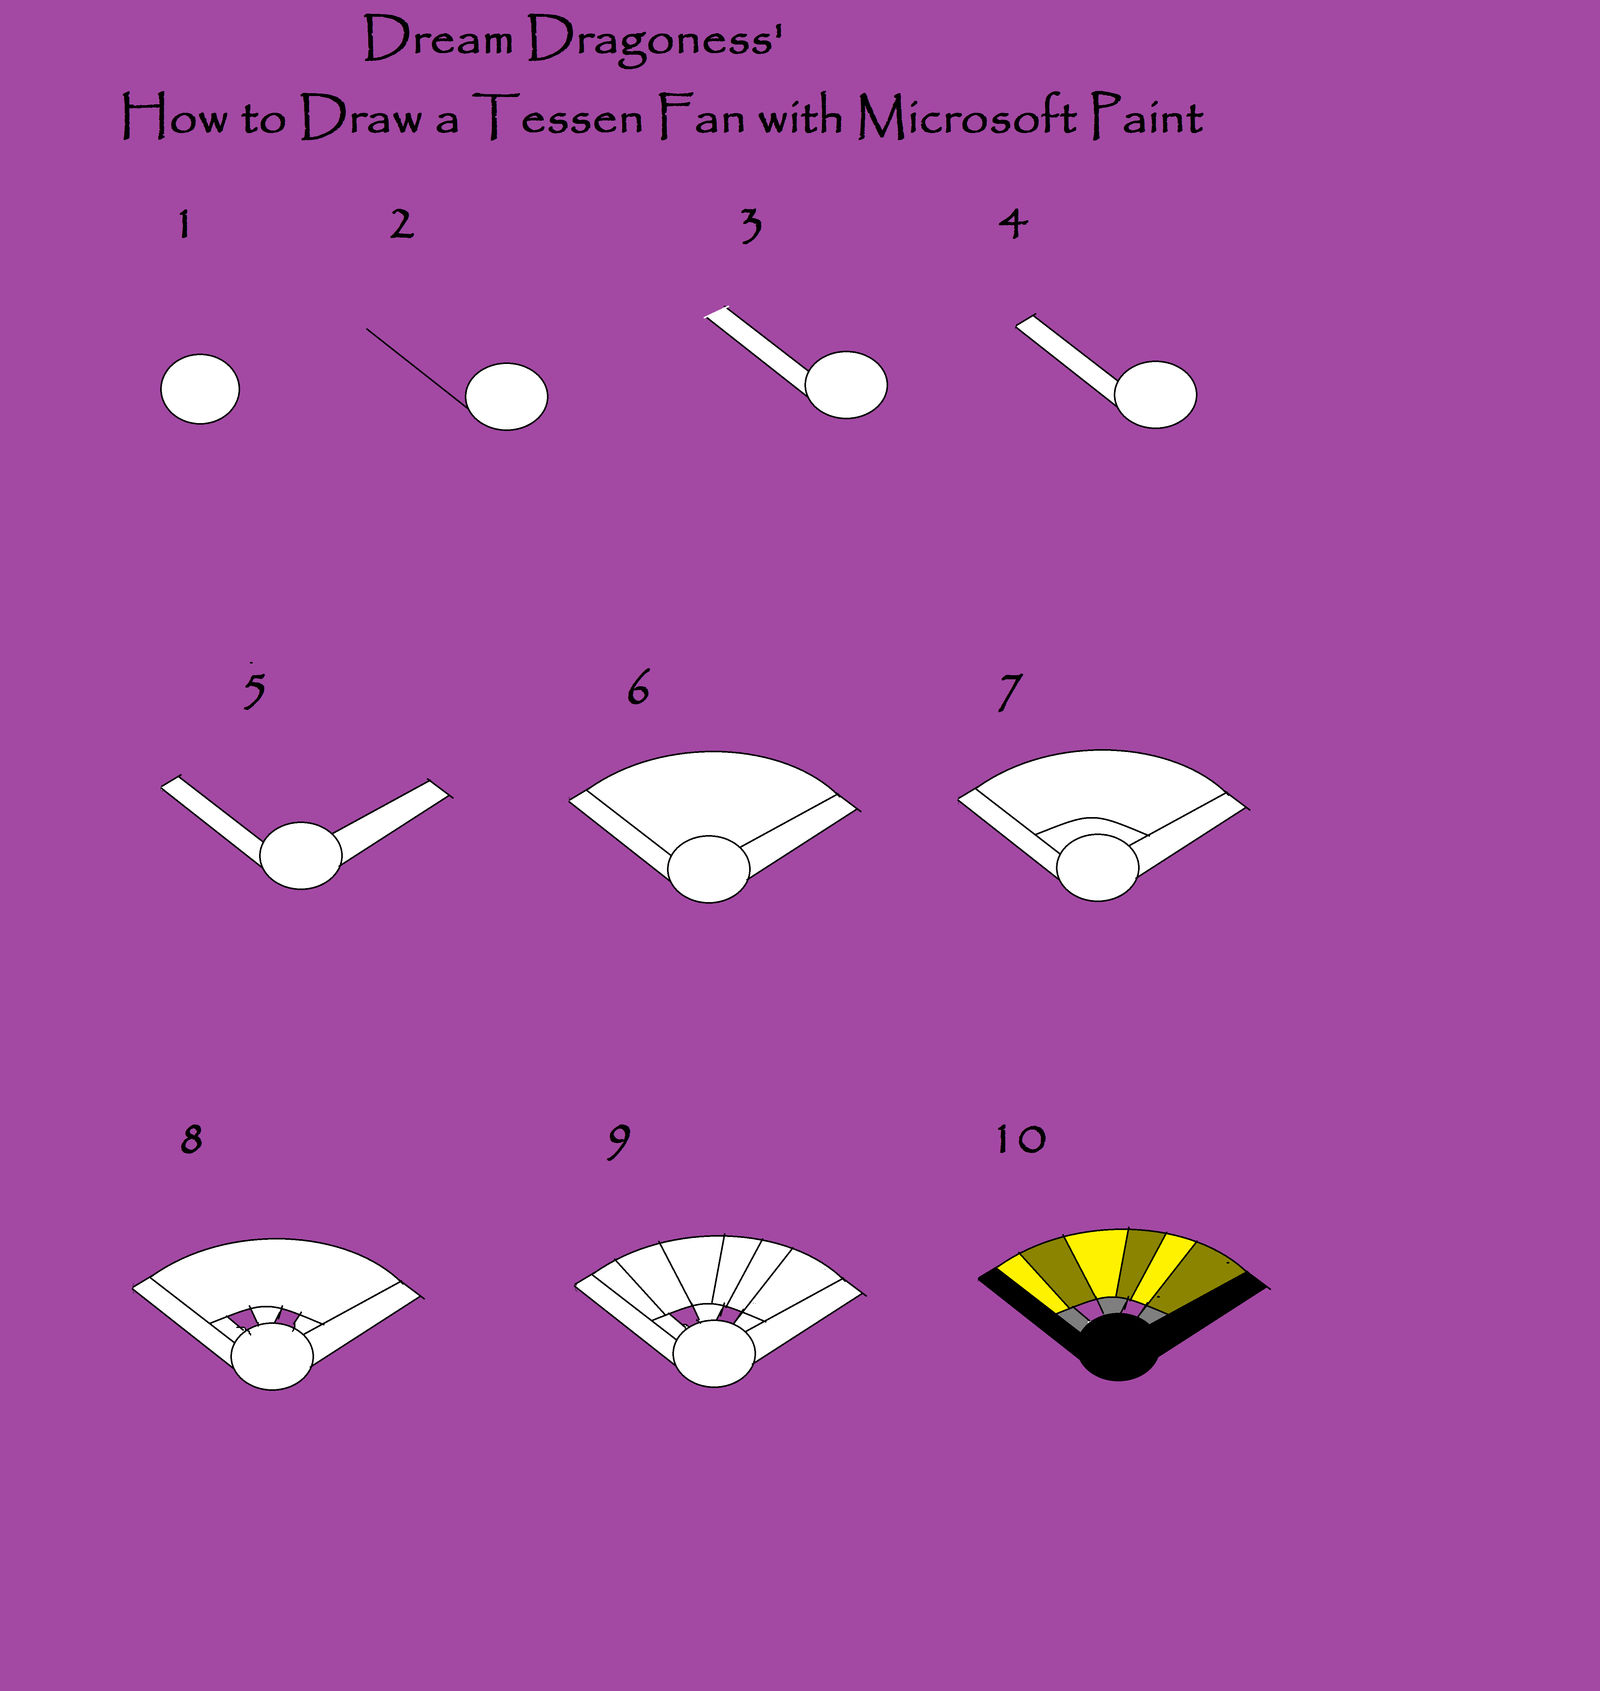 How To Draw A Tessen Fan With Microsoft Paint By Dream Dragoness On Deviantart